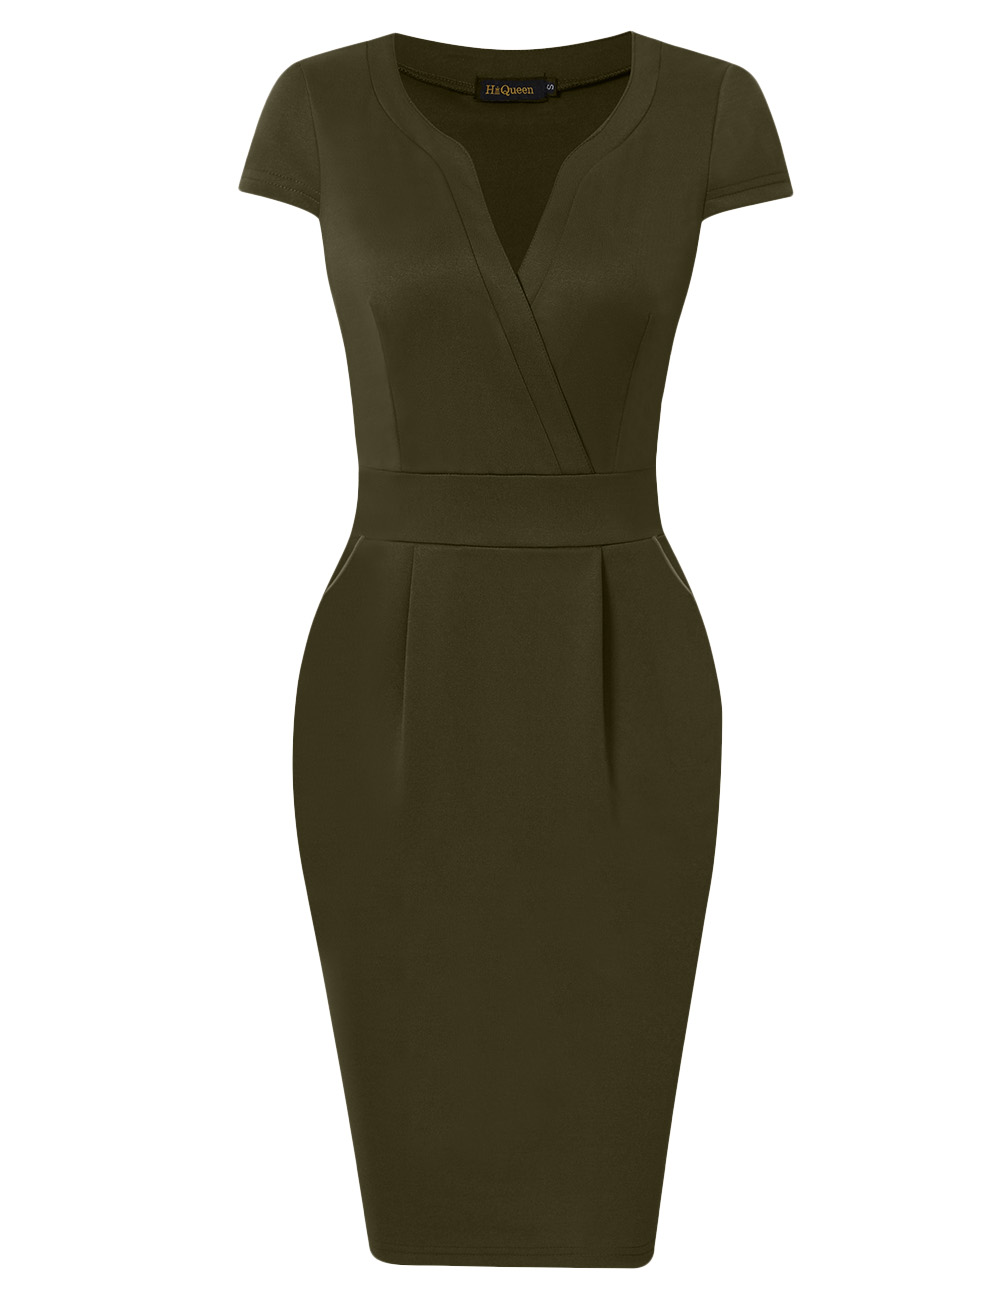 Women's Cap Sleeve Pencil Dress